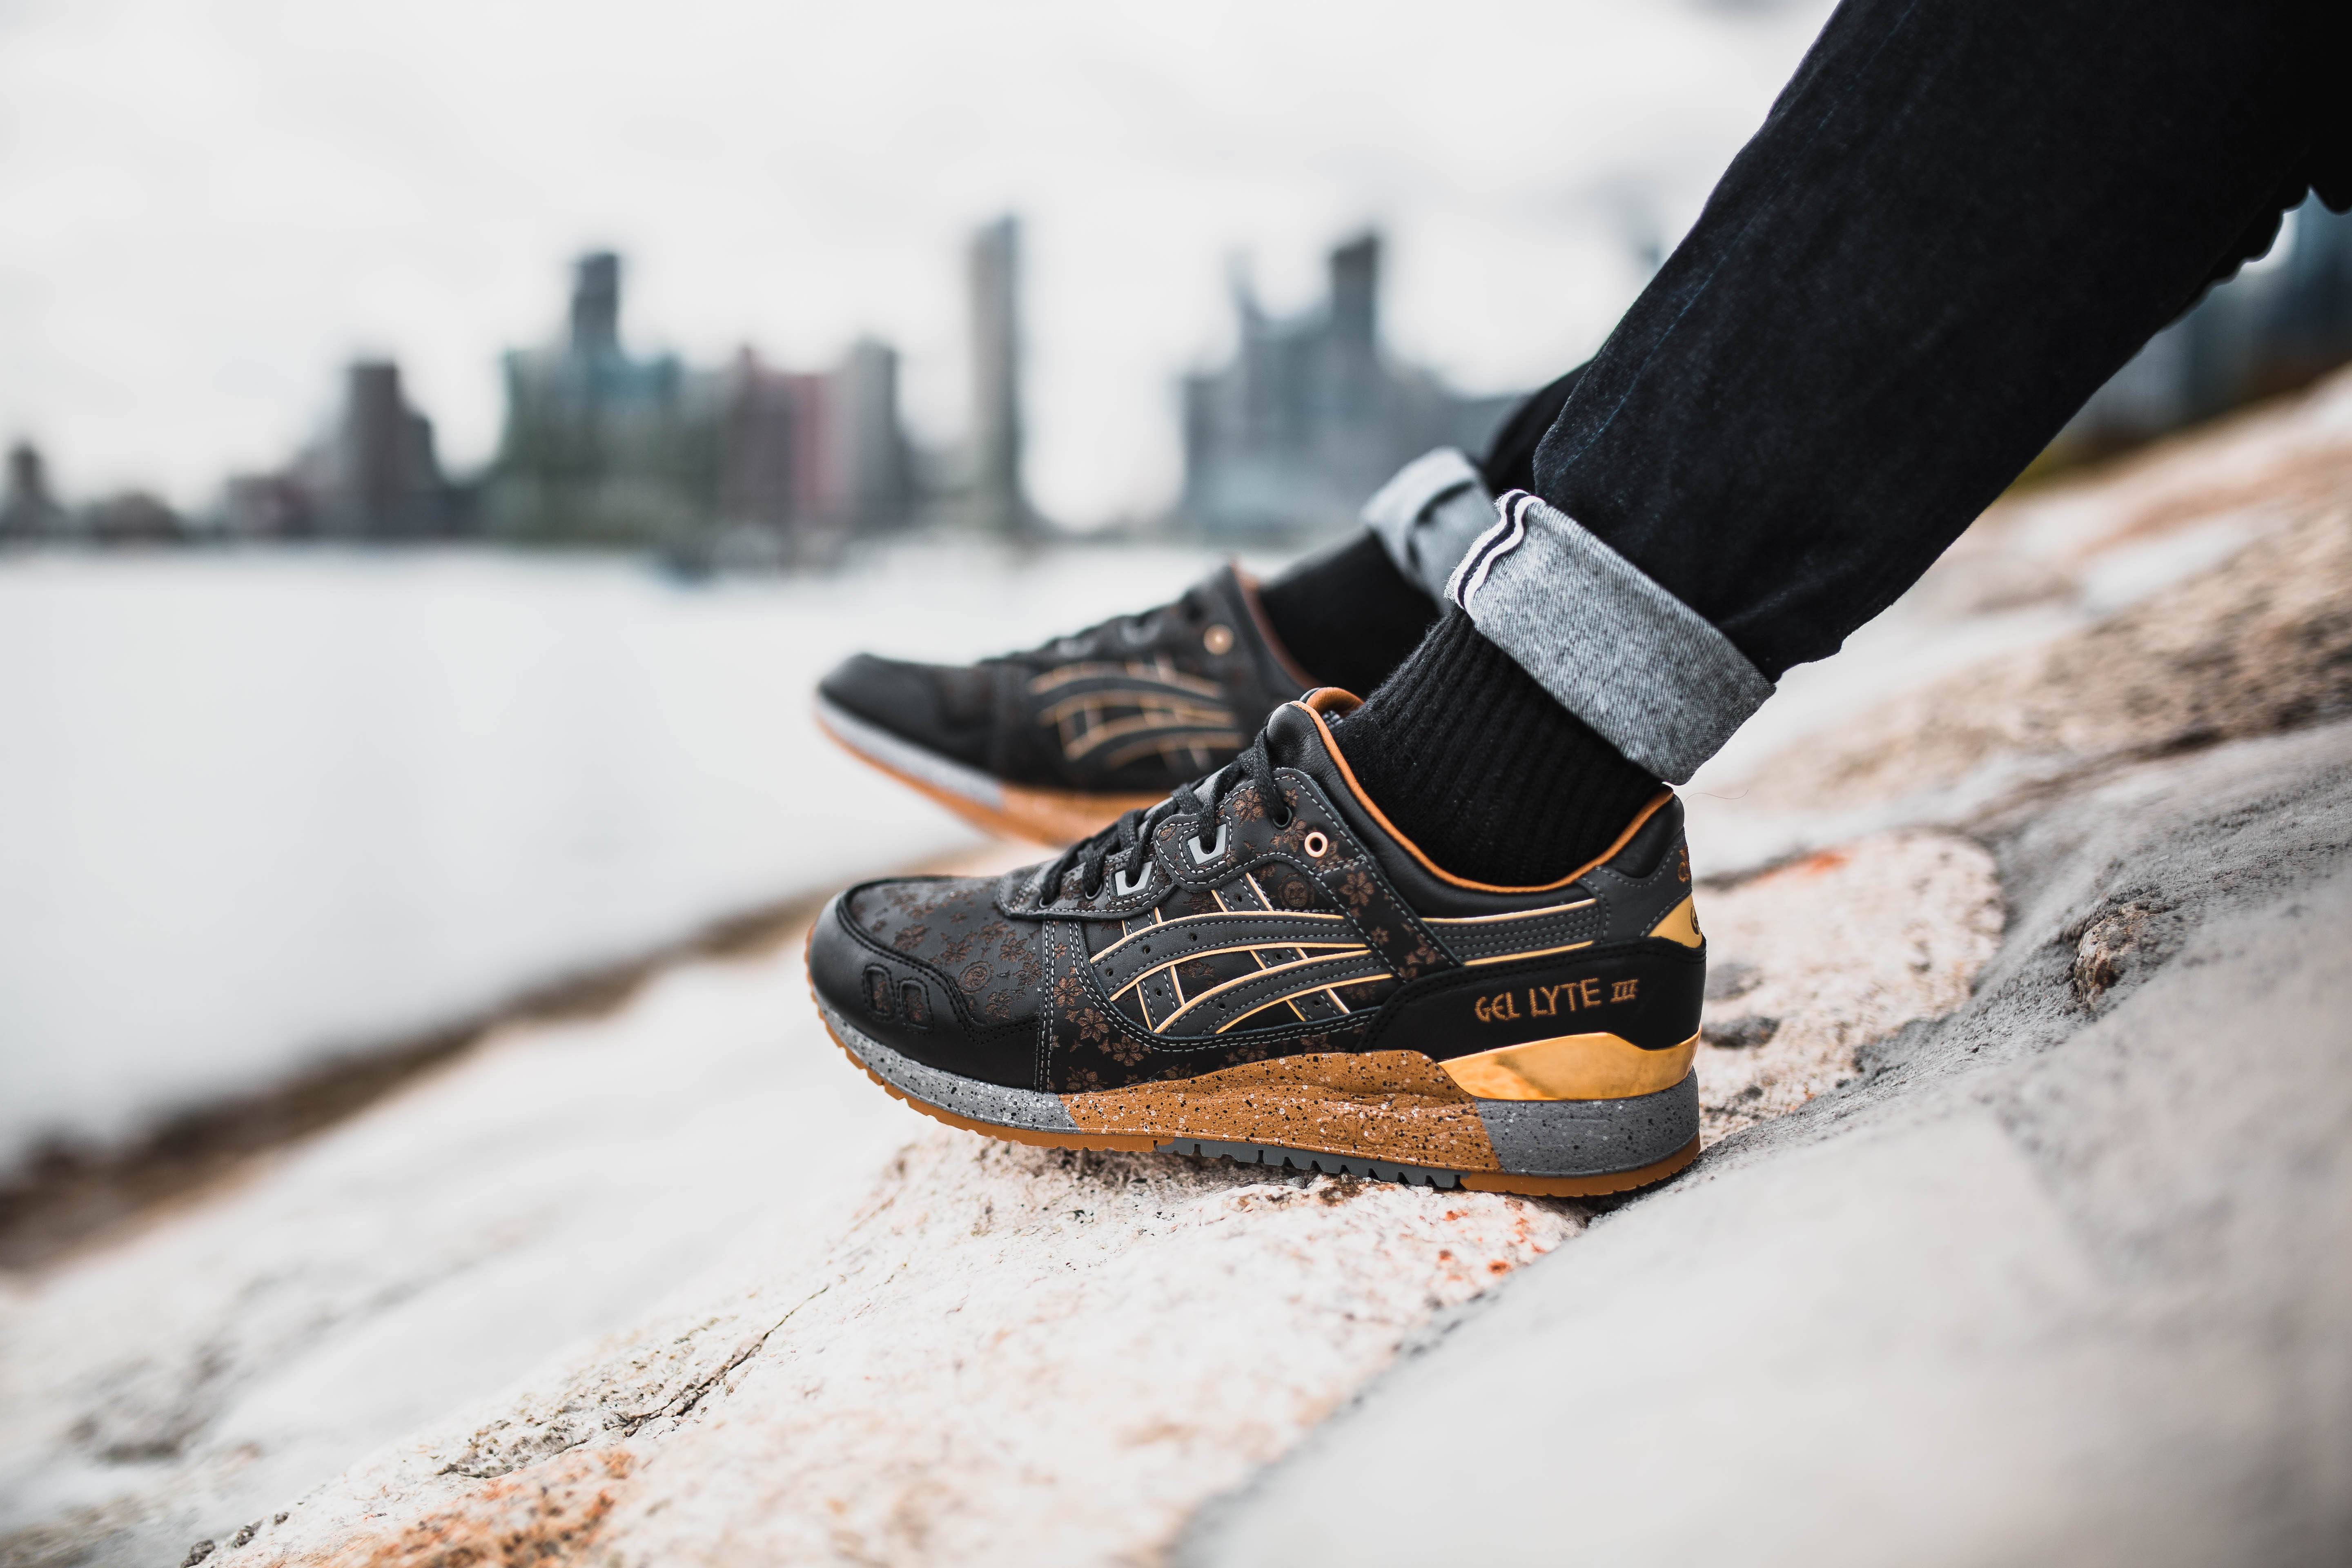 the latest 53e49 9ab7e LIMITED EDT X ASICS GEL-LYTE VANDA PACK - MASSES